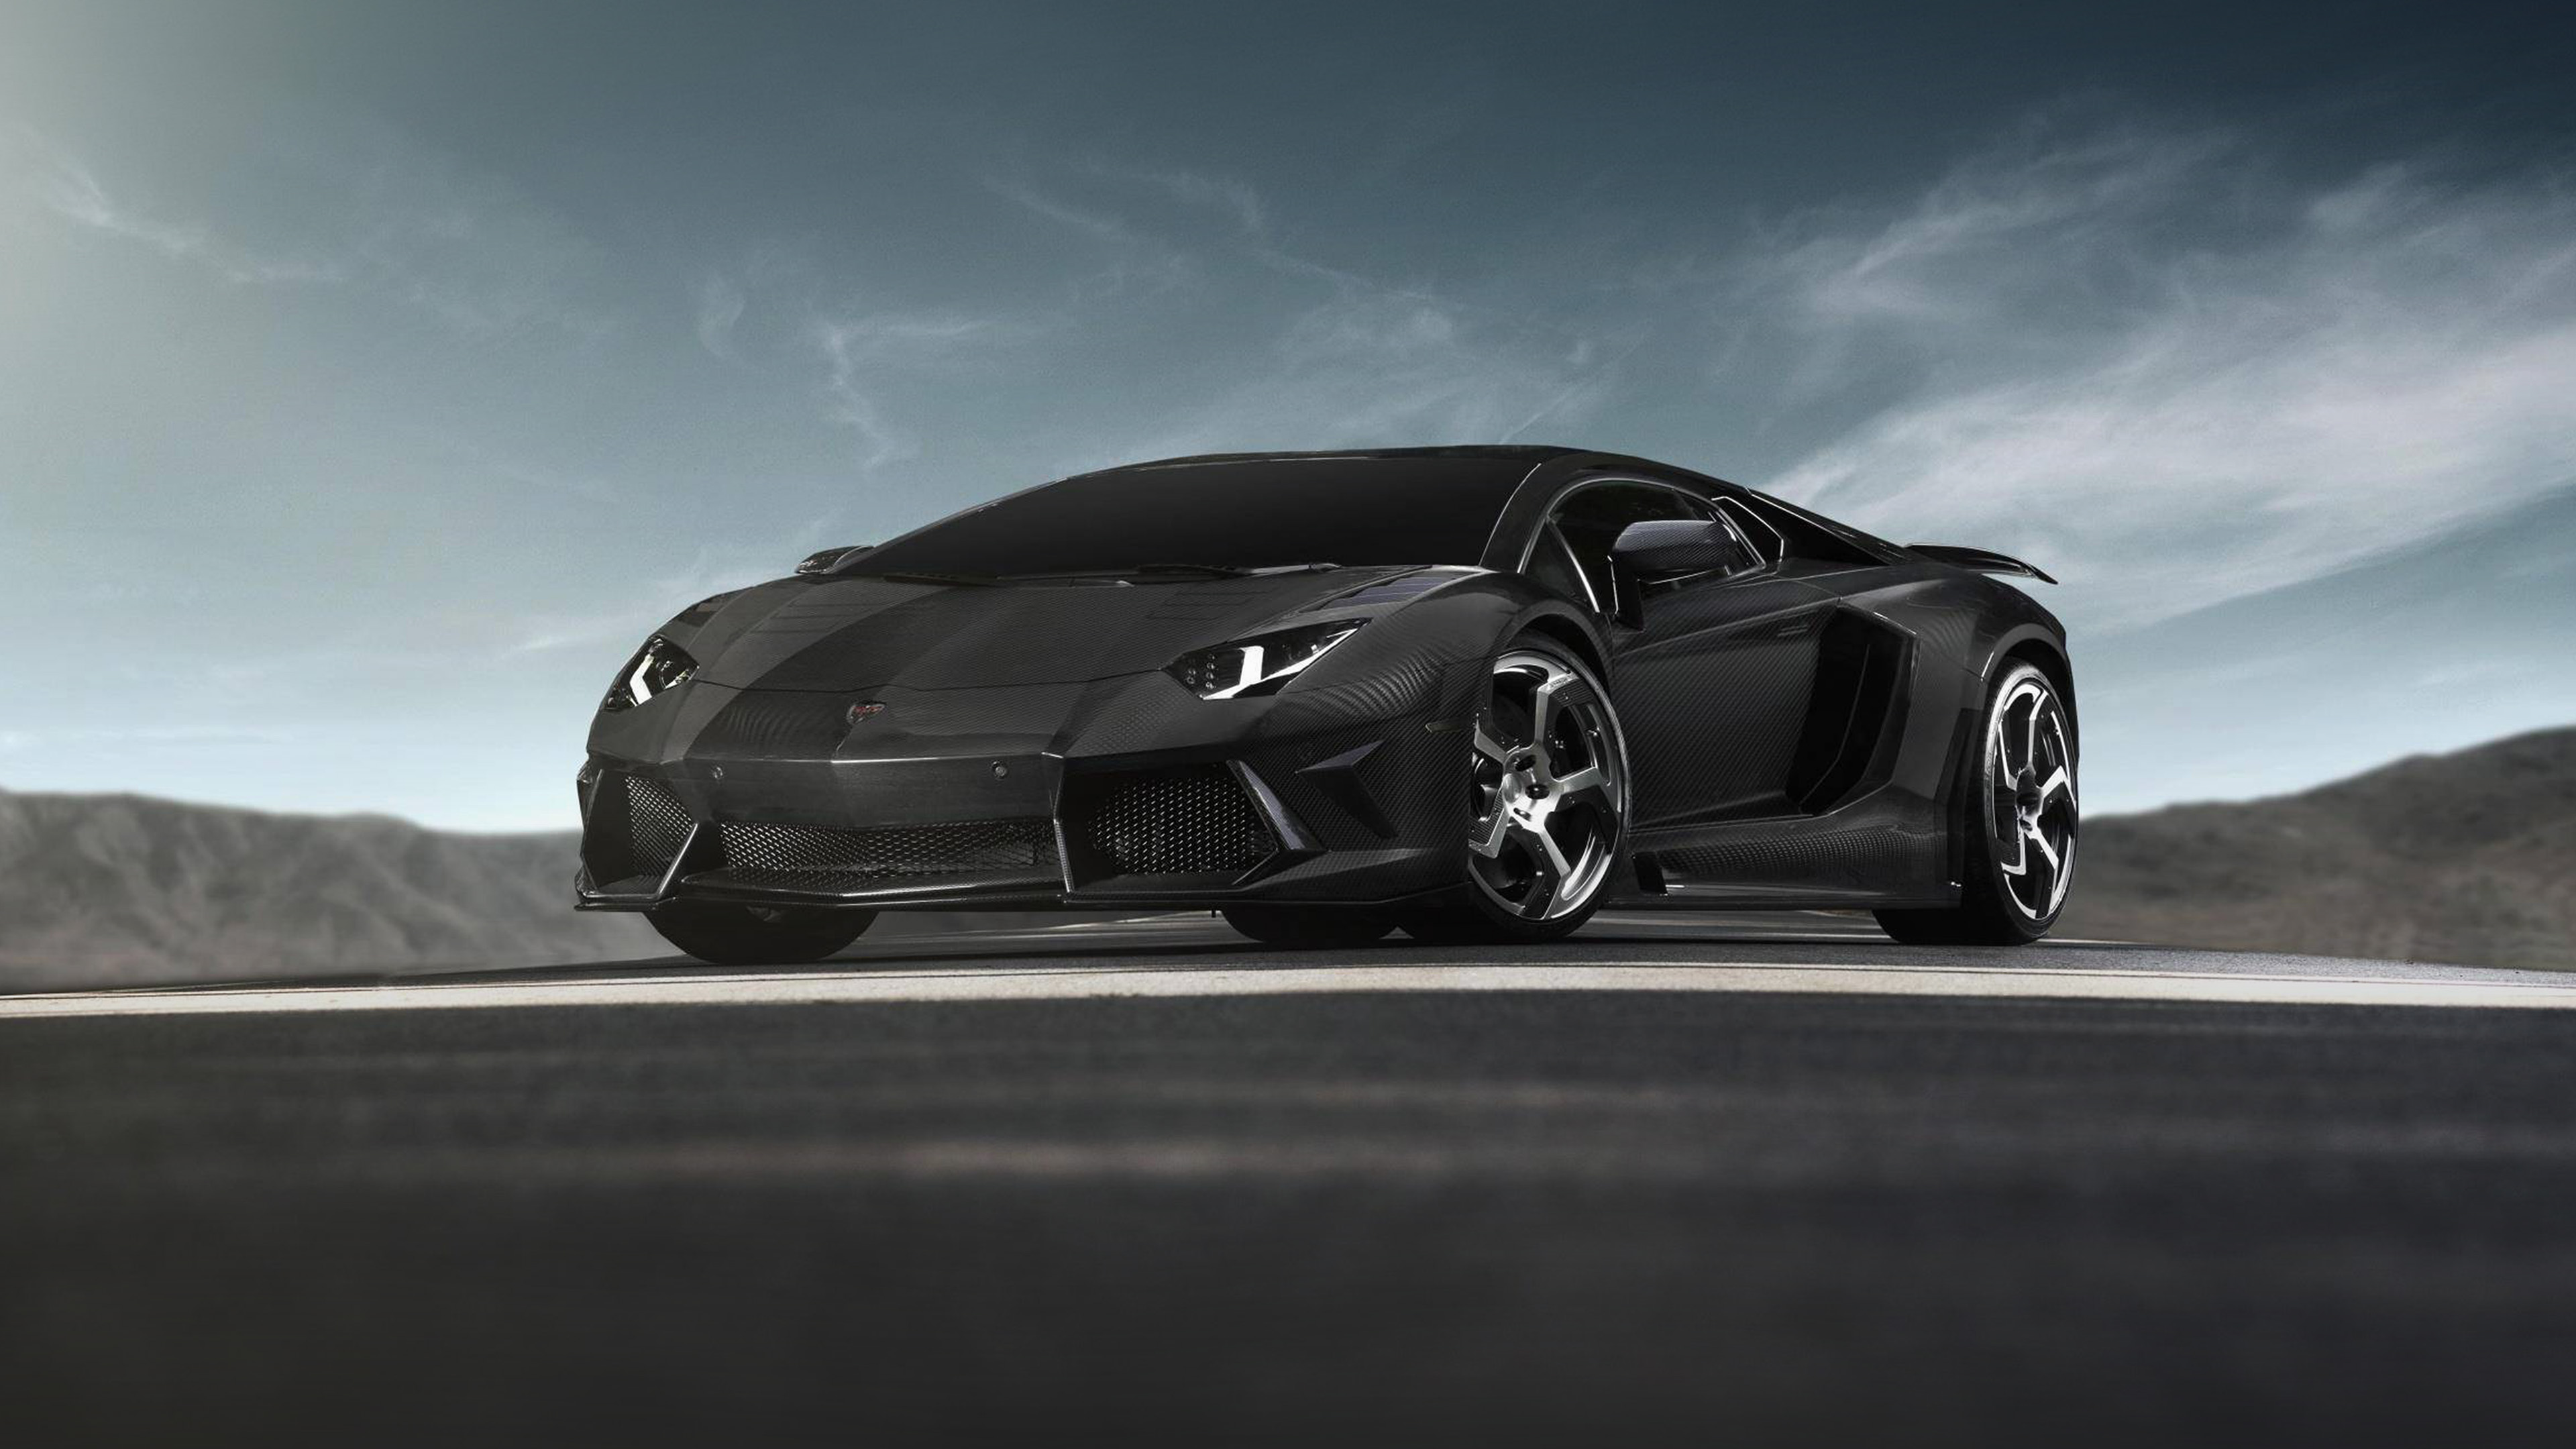 Best Wallpaper Mac Lamborghini - papers  Photograph_673969.jpg